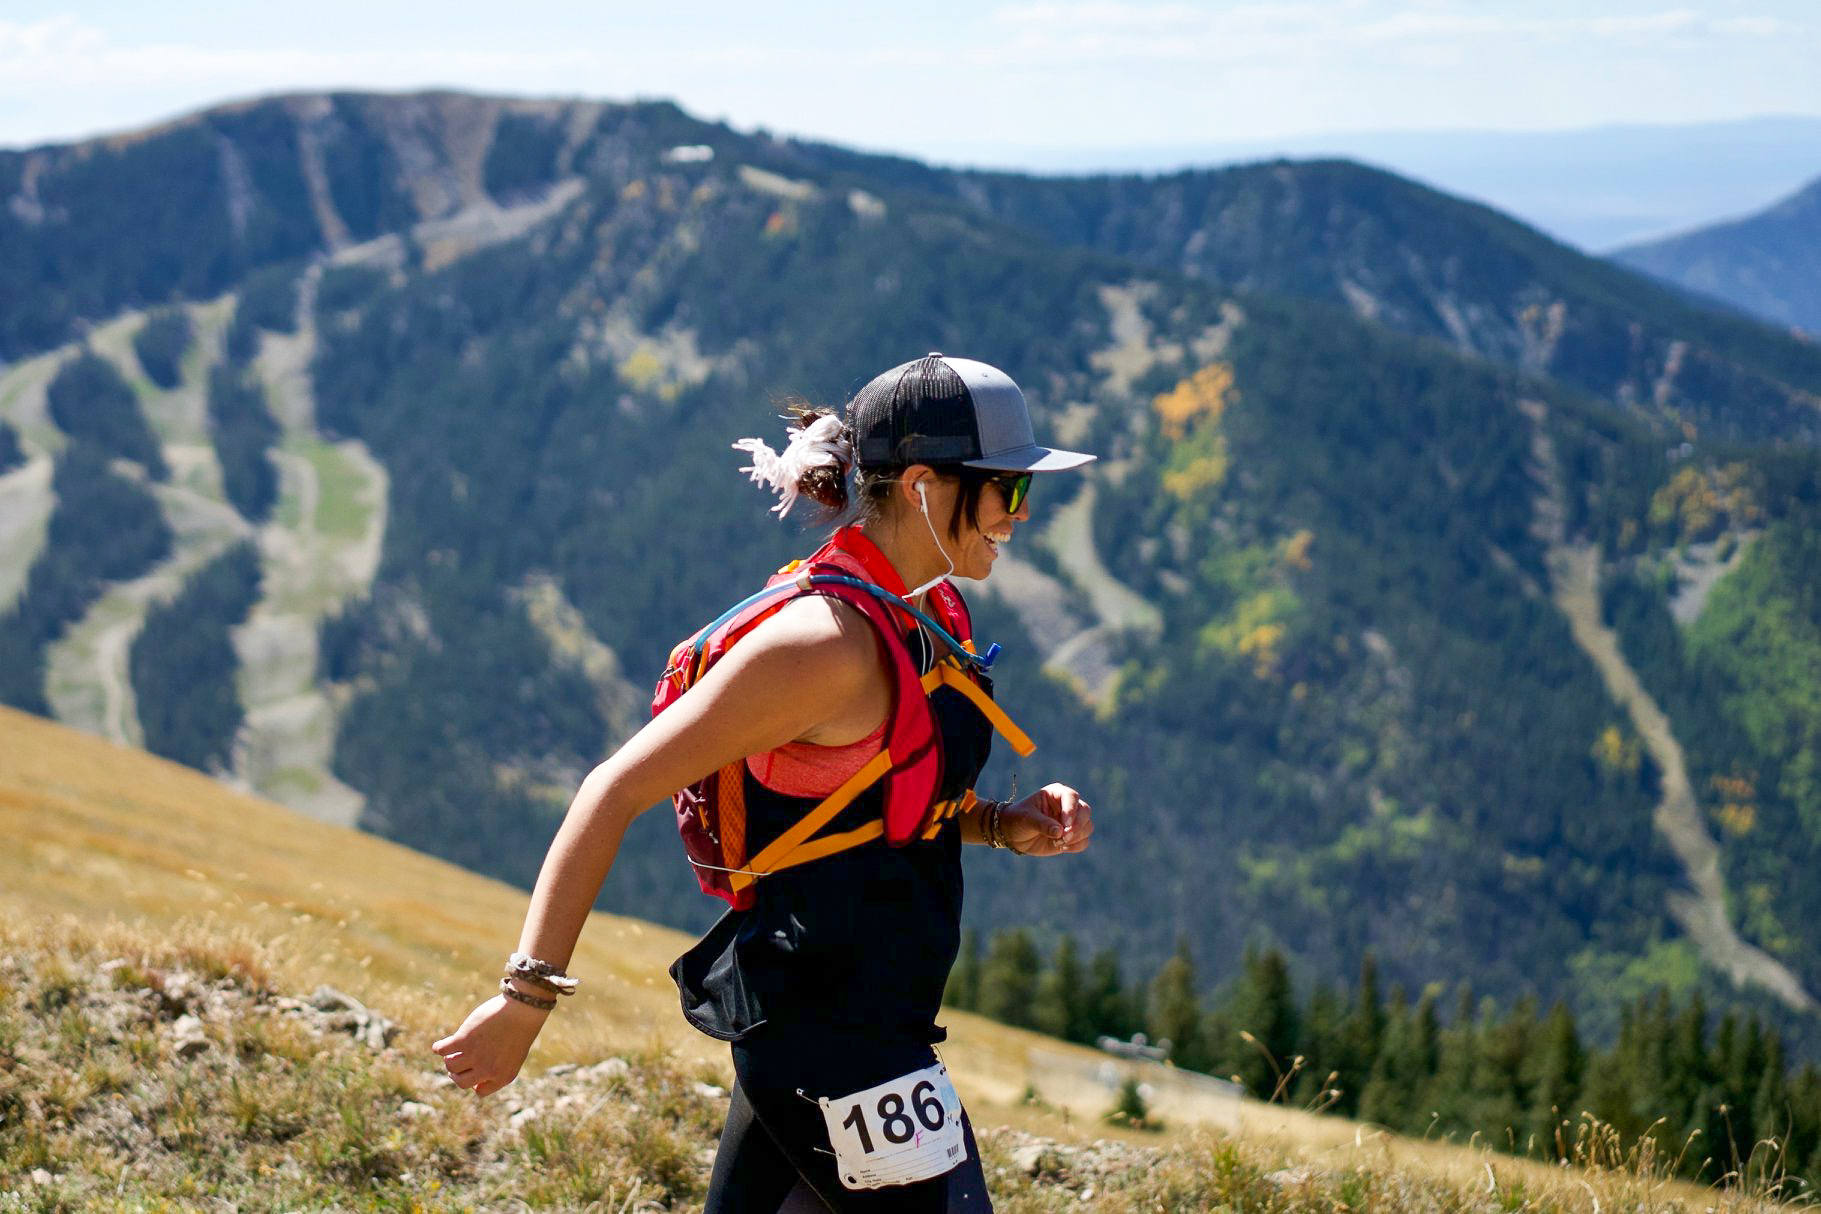 Taos Bull of the Woods Race: Tips for a Successful Run